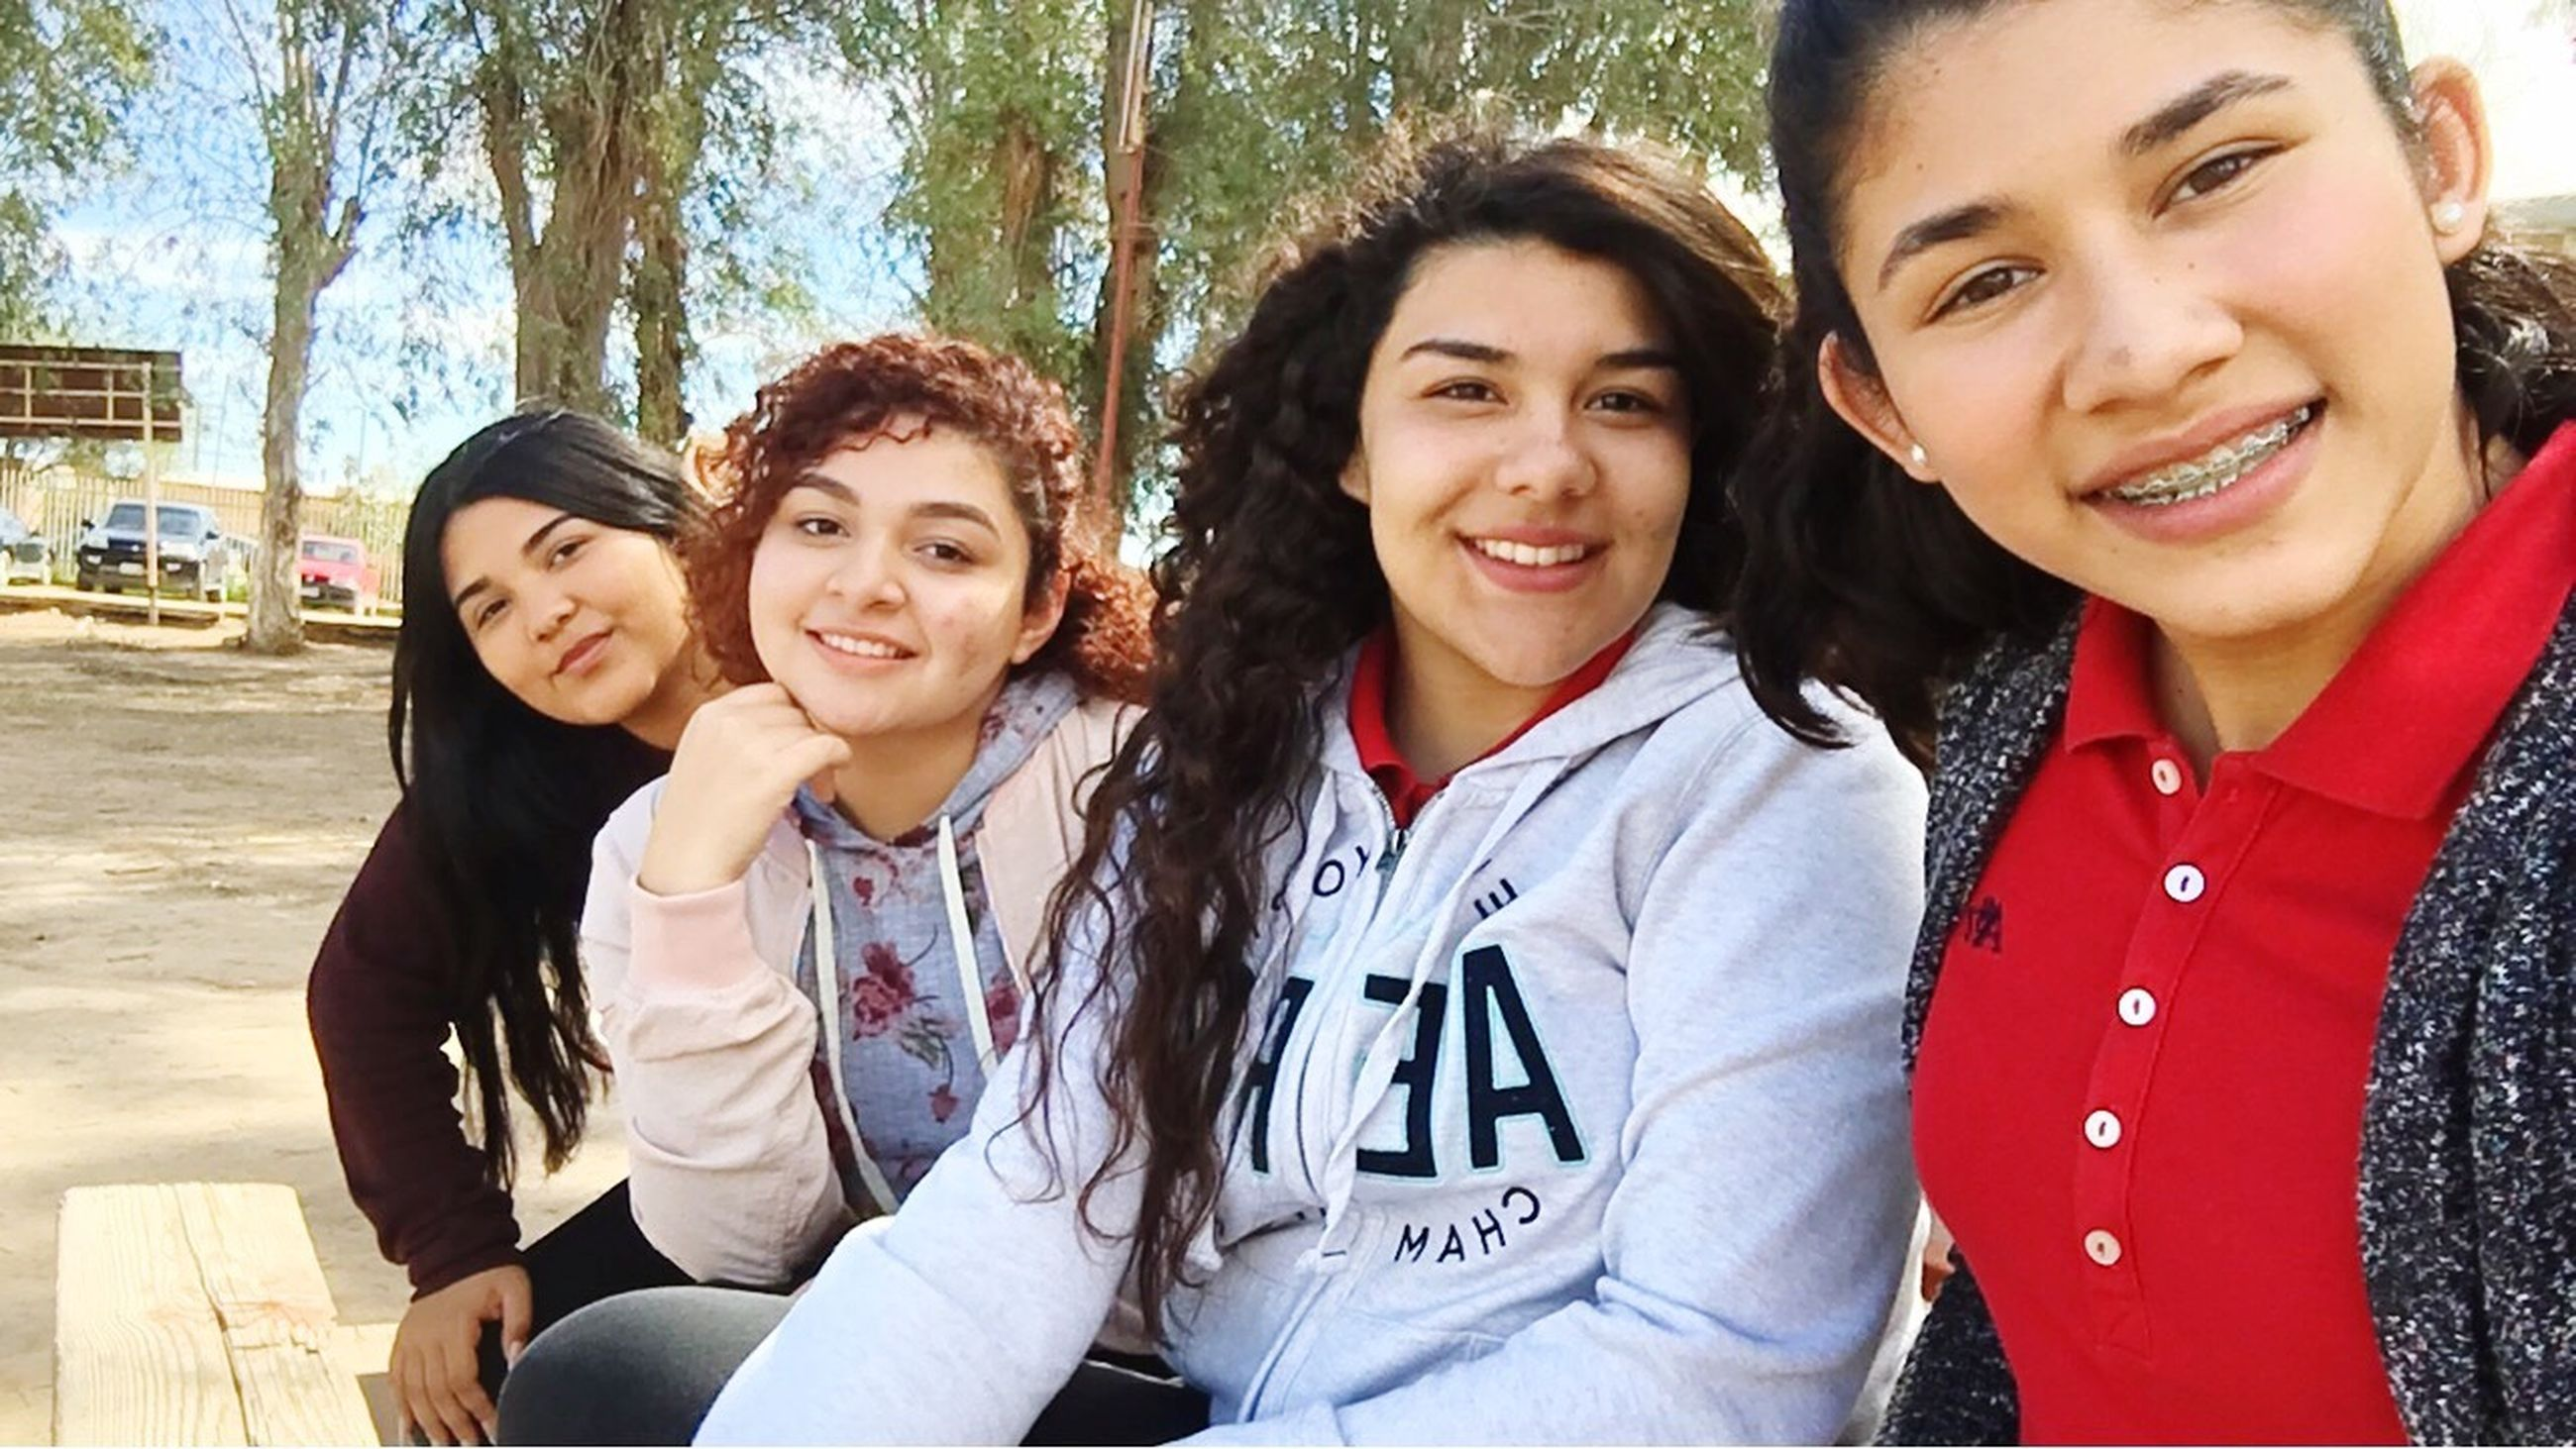 portrait, looking at camera, smiling, teenager, young adult, friendship, togetherness, beauty, beautiful people, people, cheerful, outdoors, happiness, archival, women, selfie, young women, student, adult, tree, day, adults only